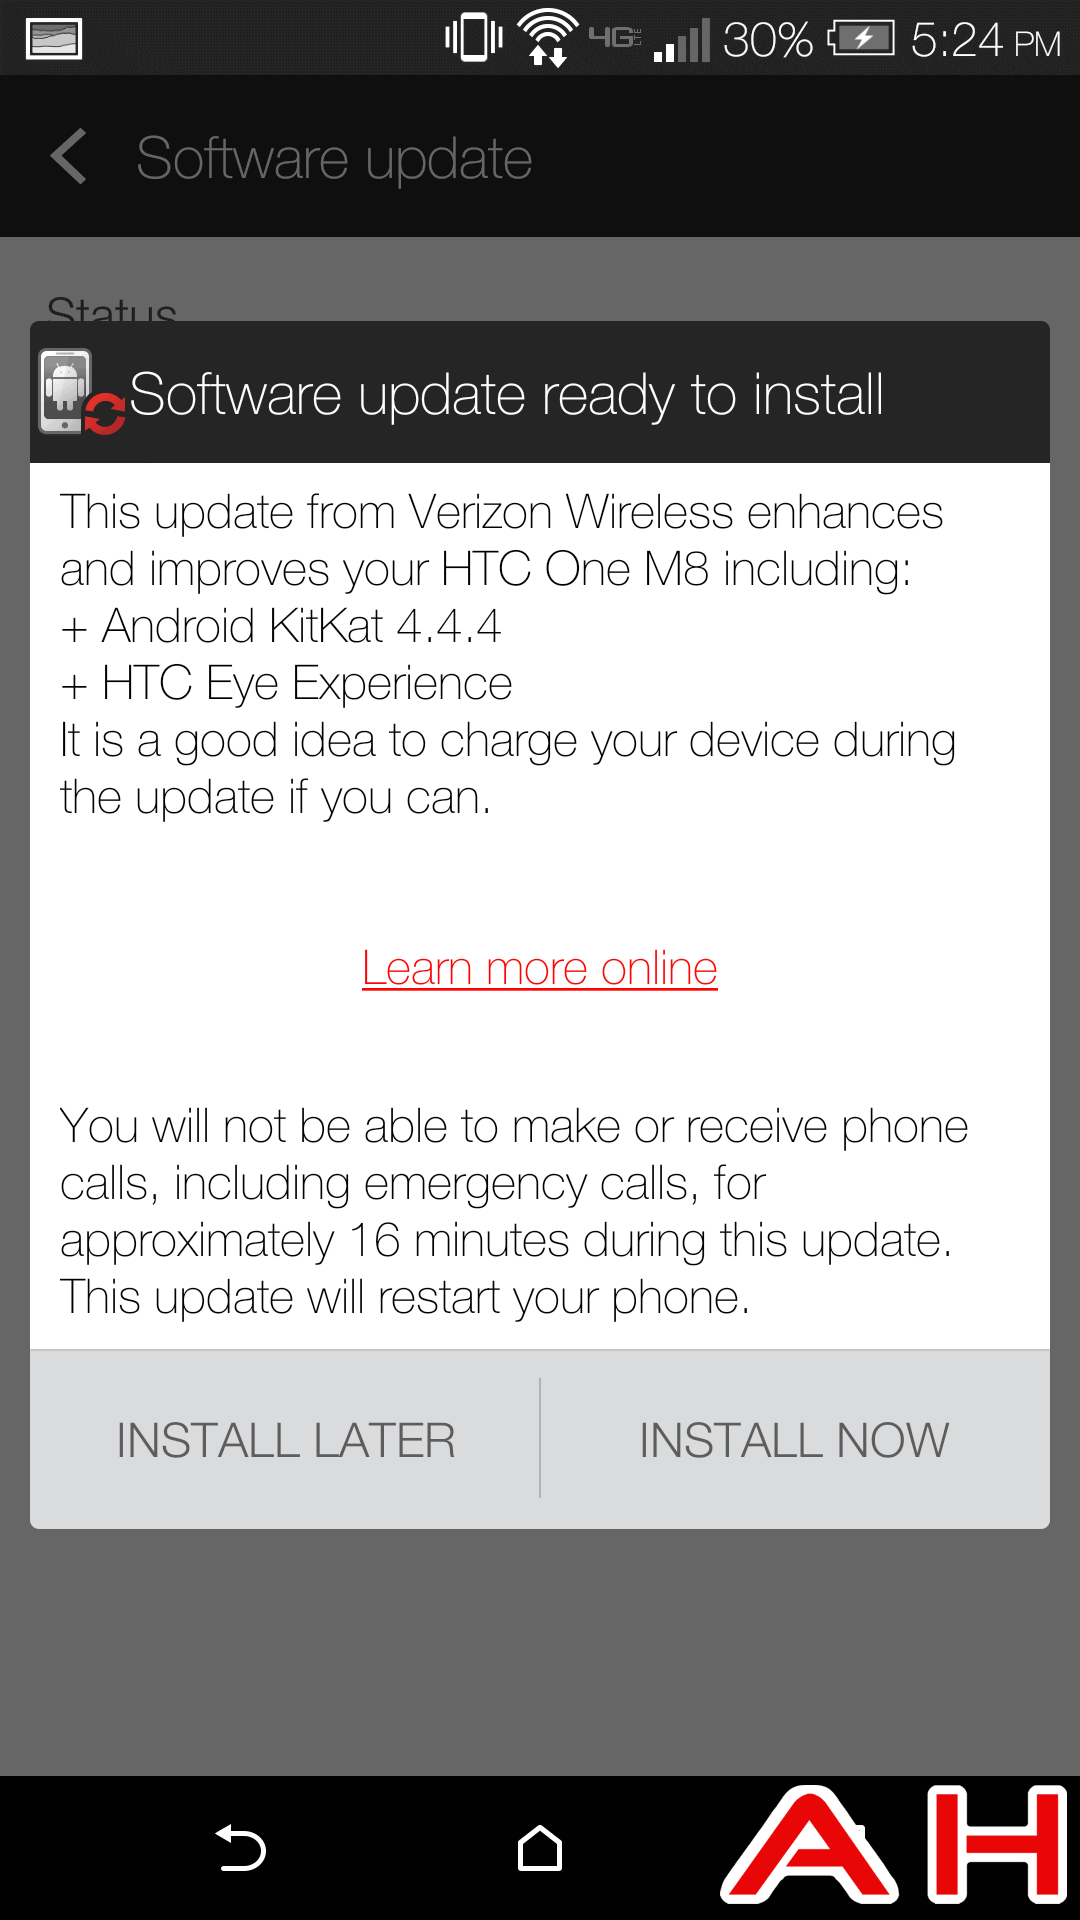 htc_oneM8_verizon_update_screenshot